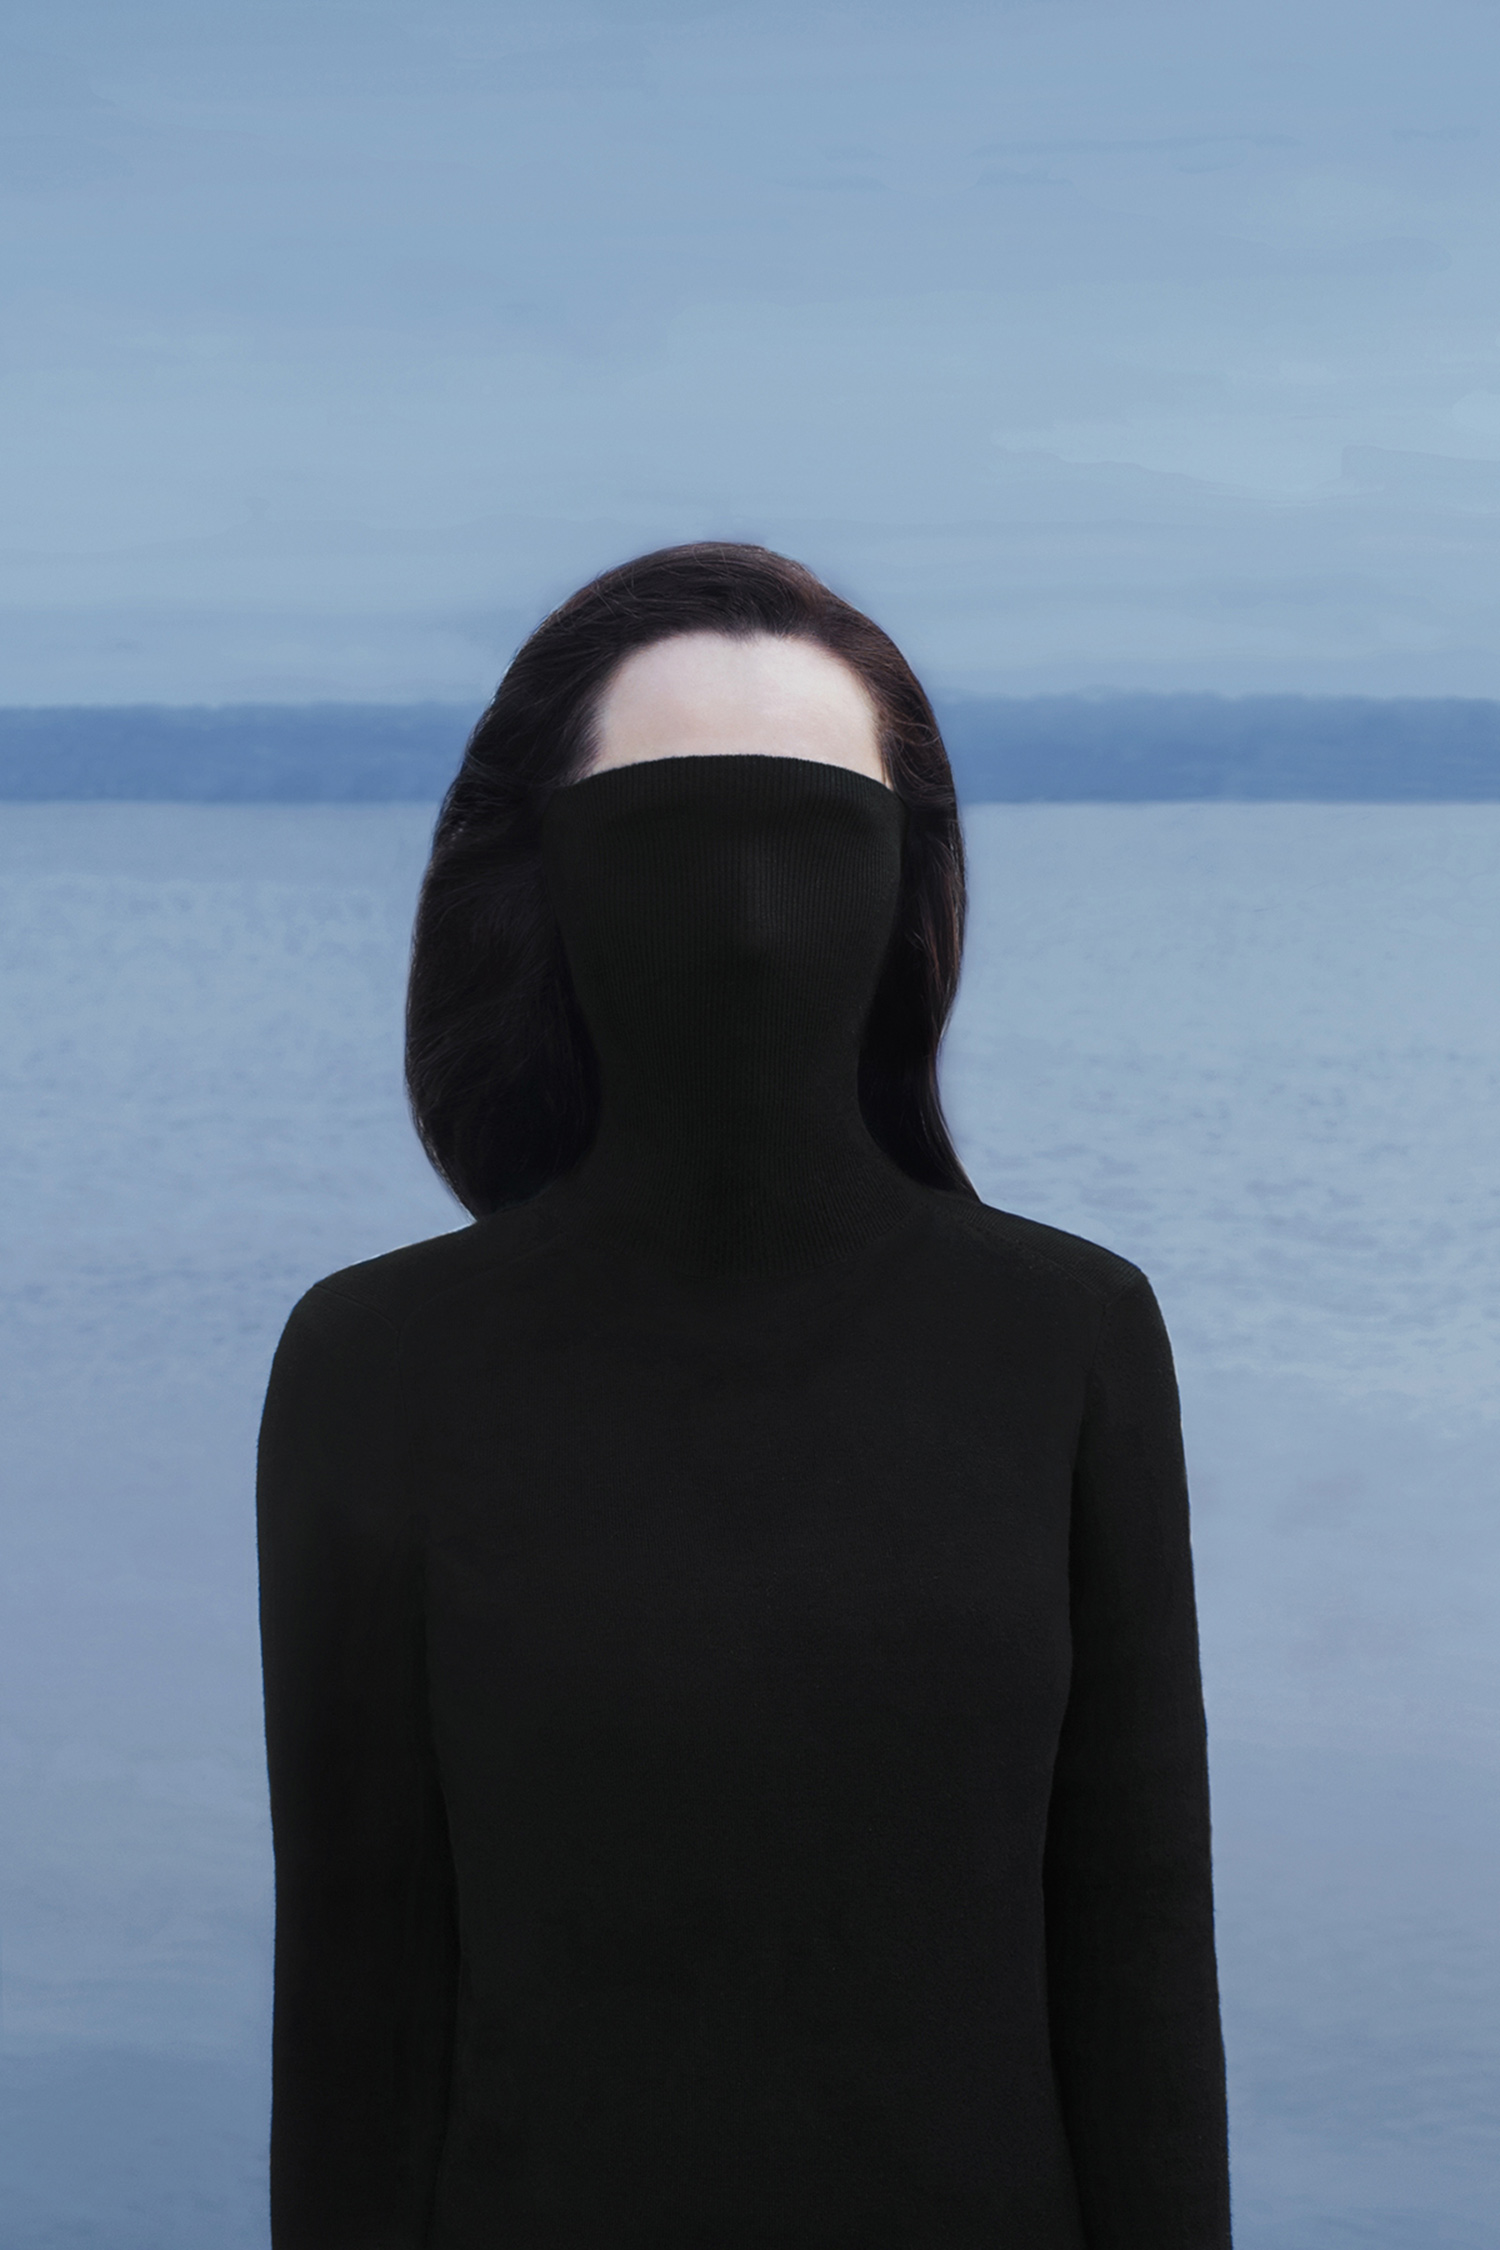 Gabriel Isak - The Sea, covered face